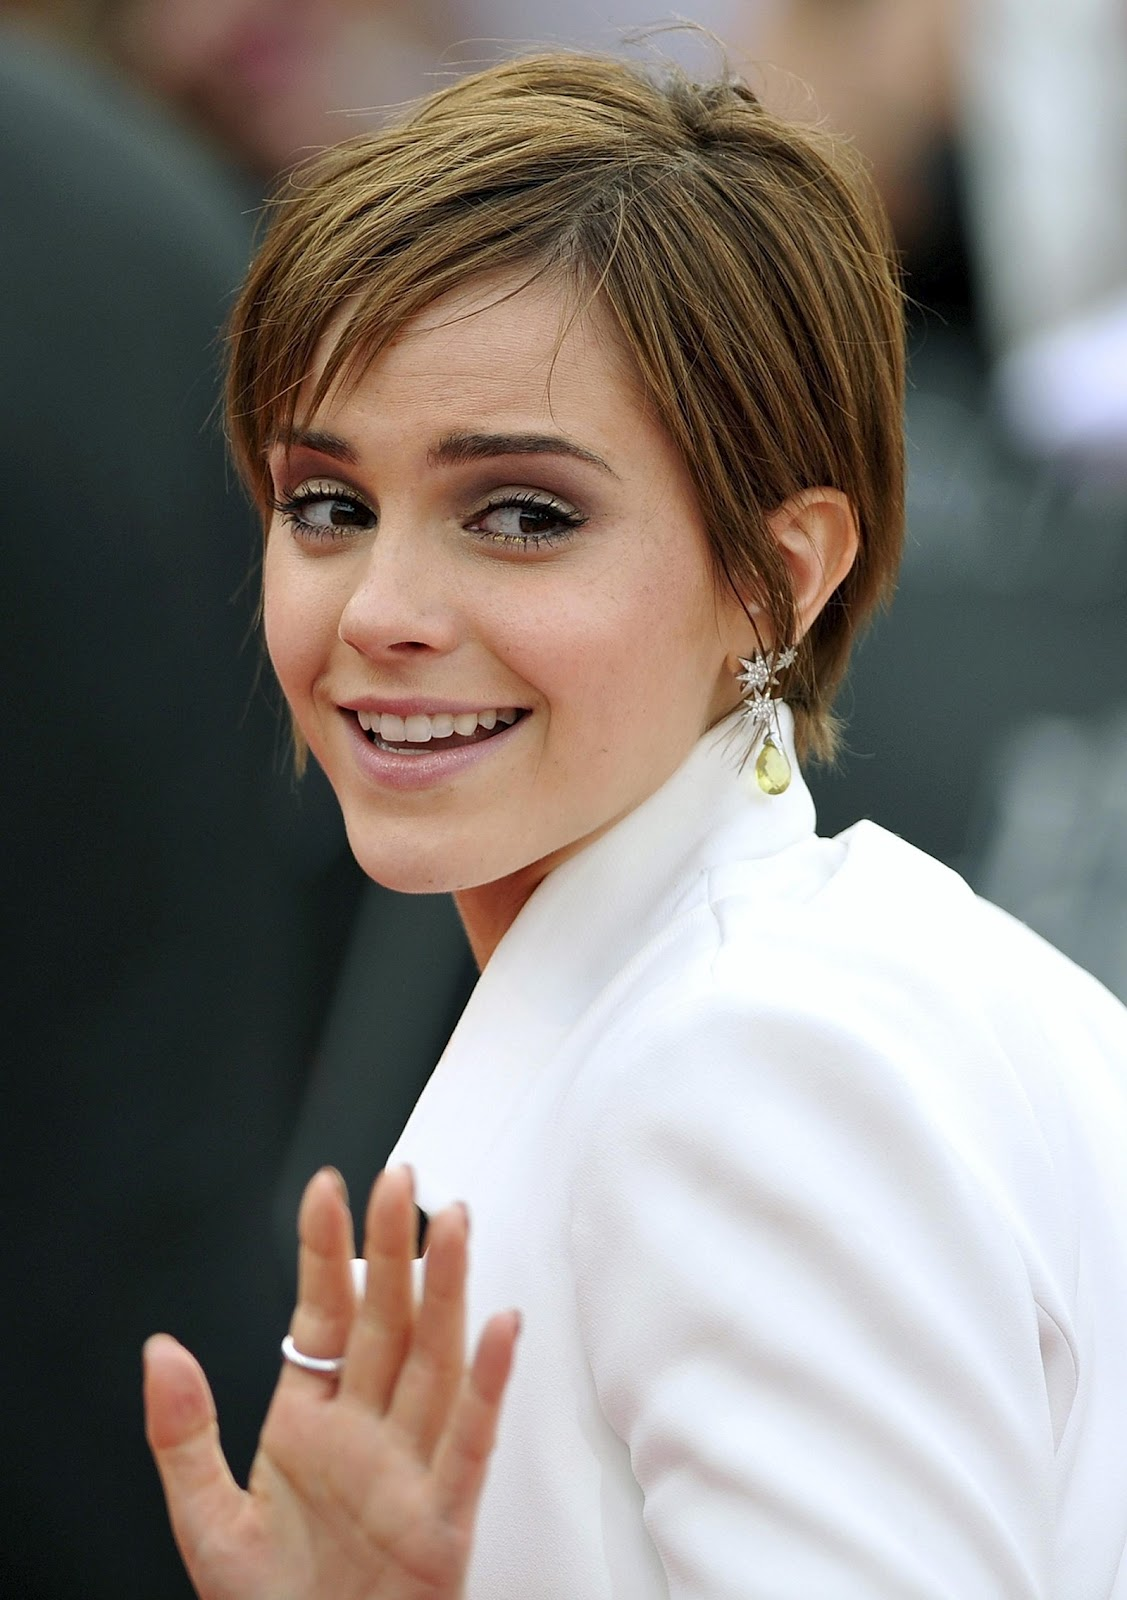 http://1.bp.blogspot.com/-3ckOONkMGCE/UClLZrPNftI/AAAAAAAACww/OpXS3efhhXc/s1600/Emma-Watson-Harry-Potter-and-the-Deathly-Hallows-Part-2-Premiere-in-London-Photos-17.jpg